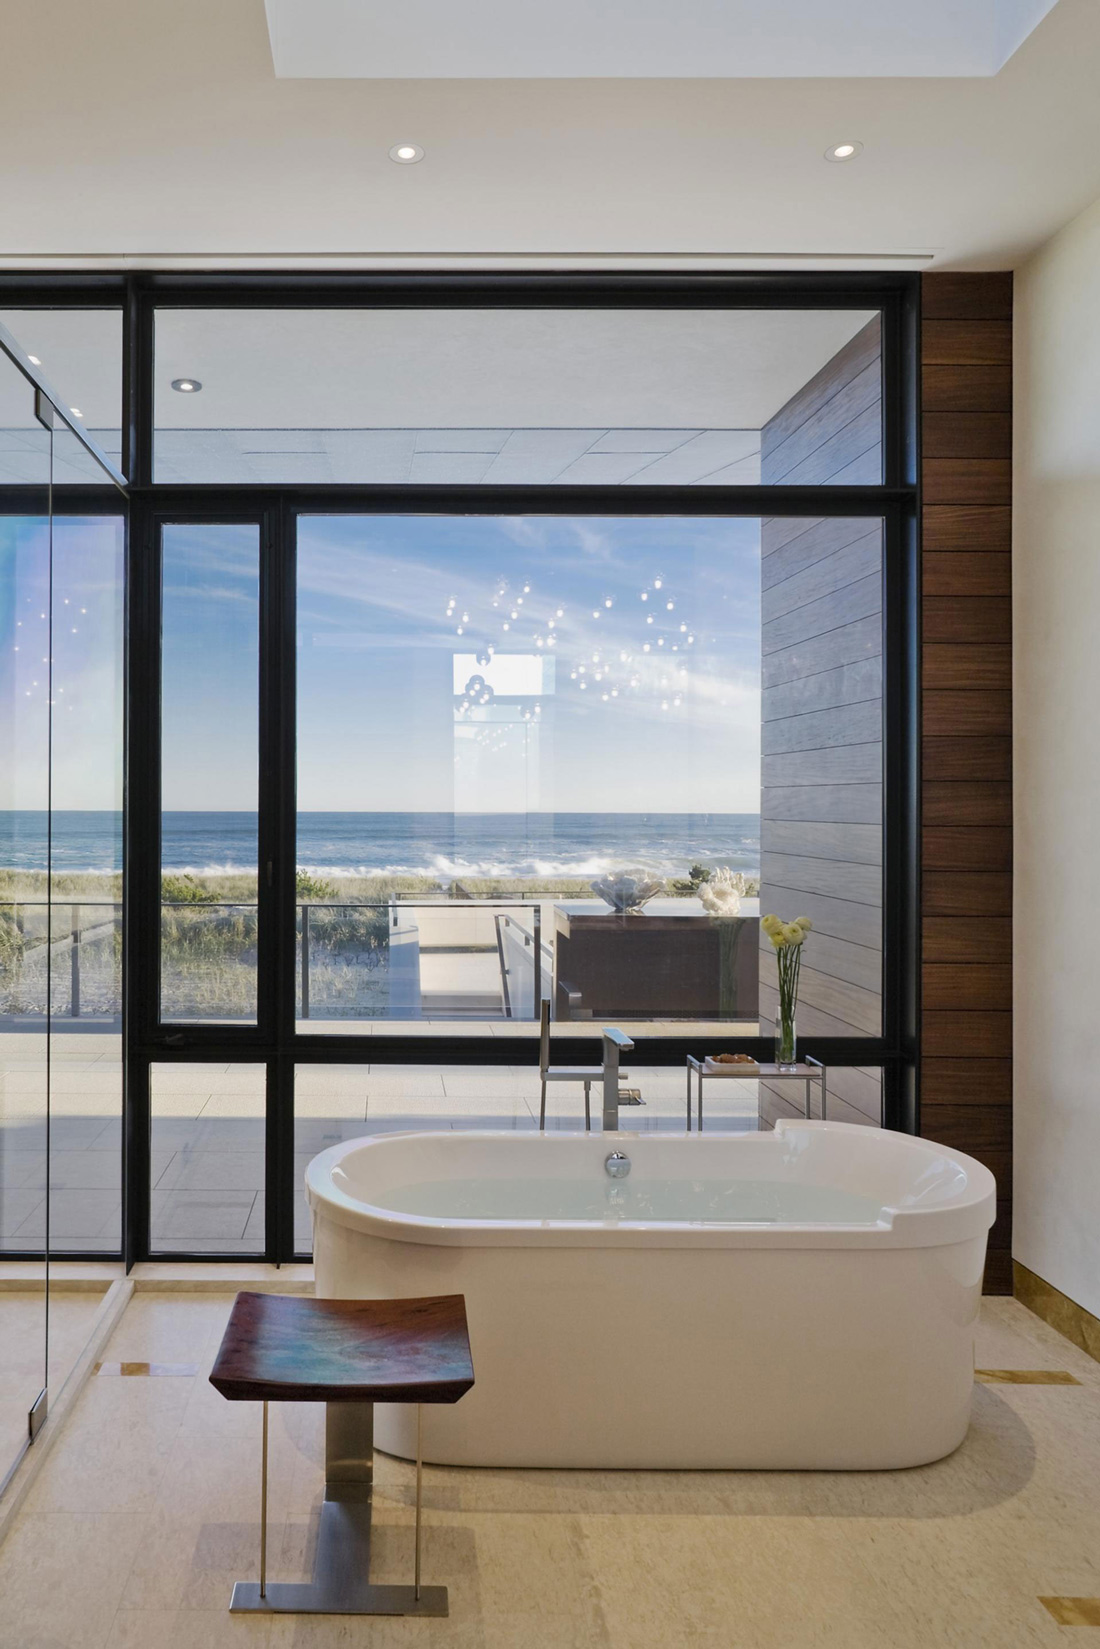 Bathroom Tub Floor To Ceiling Windows Summer Retreat In